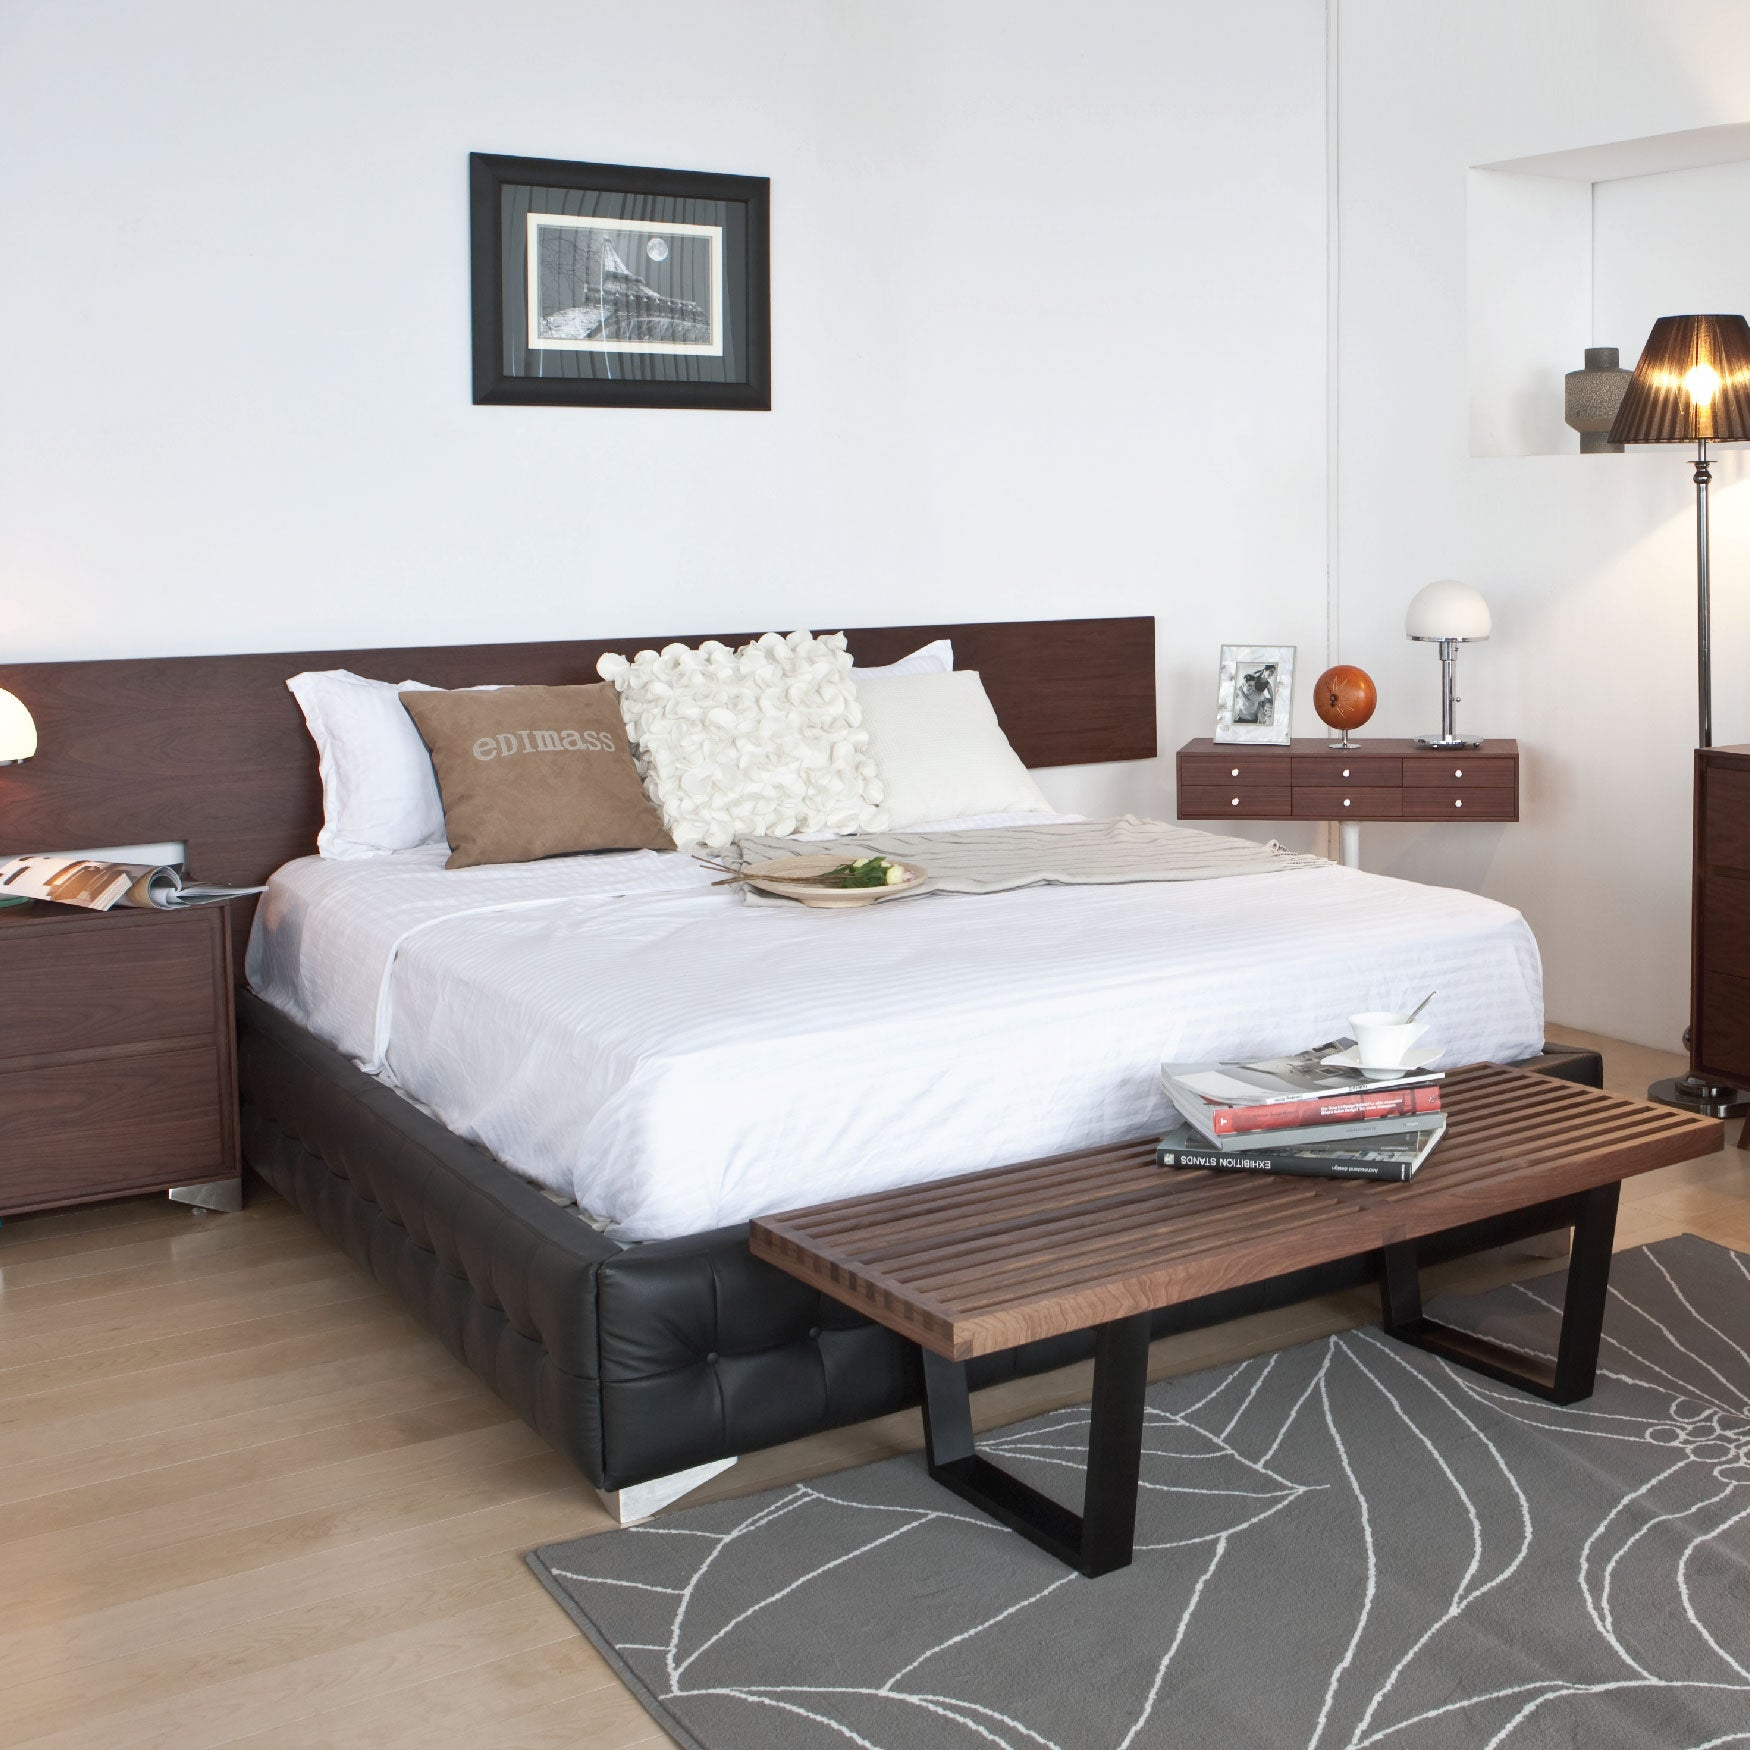 Foot Of The Bed furniture for your bed frame footboard - modern classic